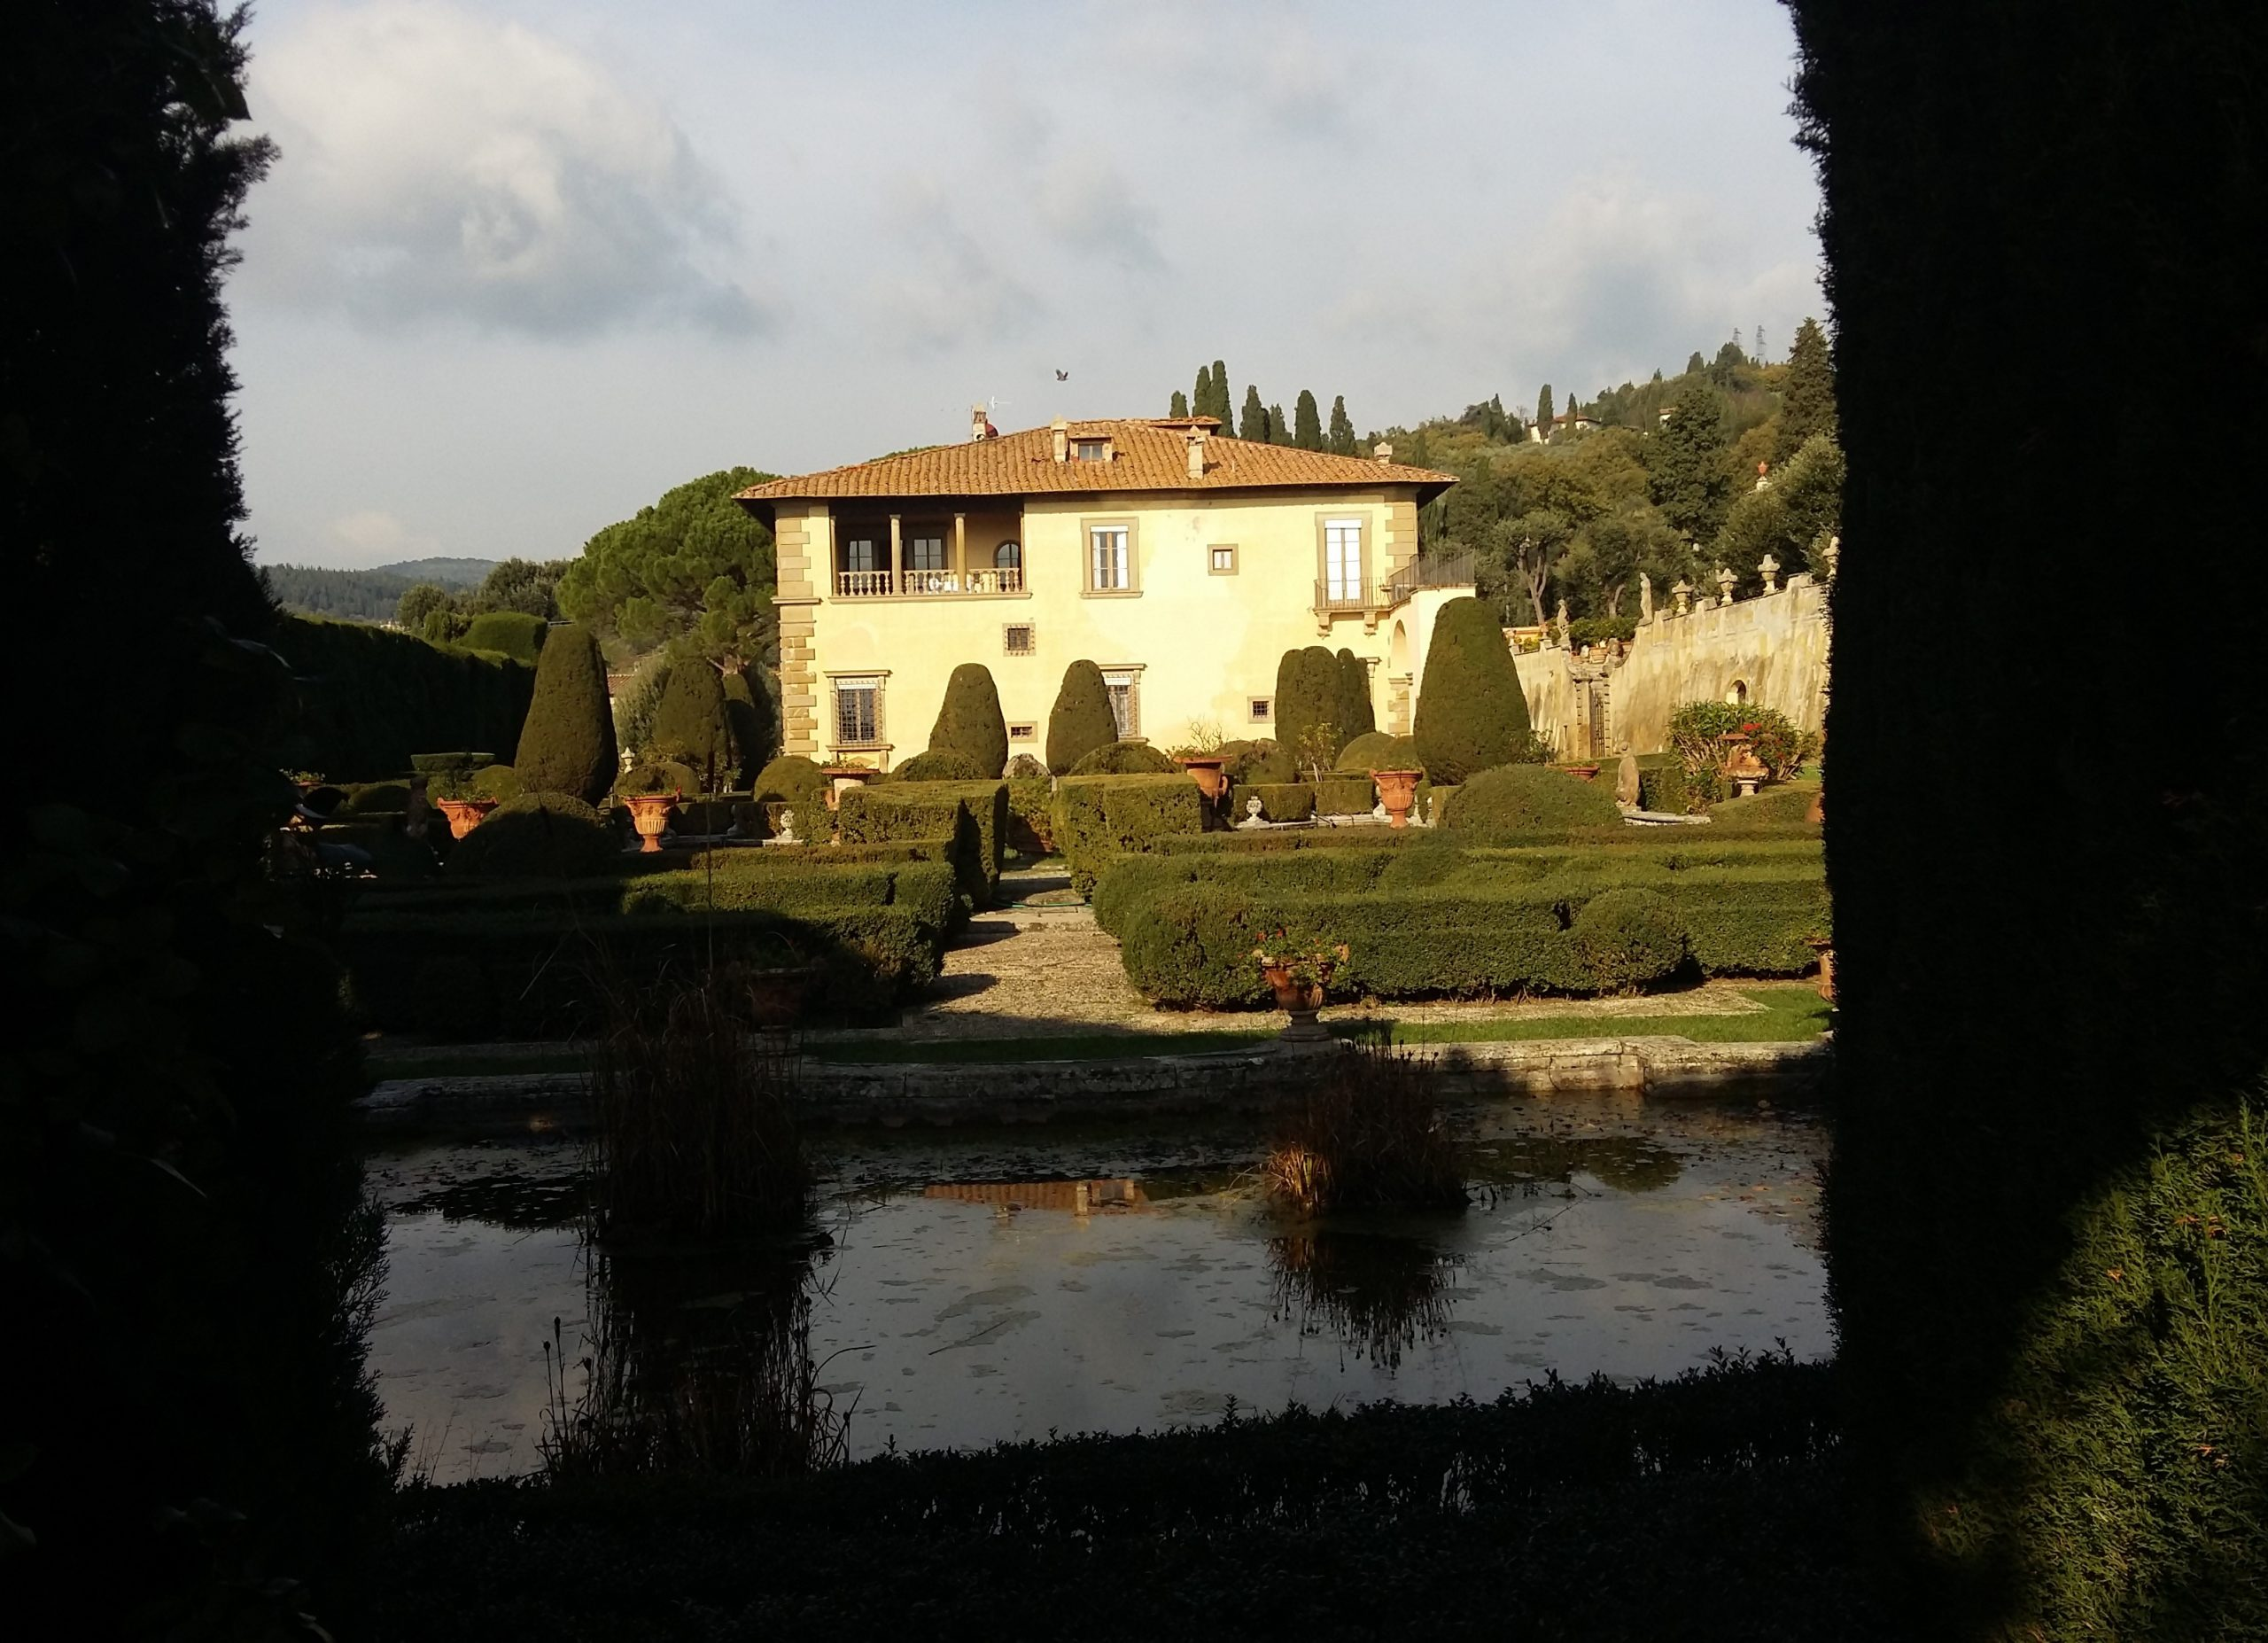 Settignano and Villa Gamberaia